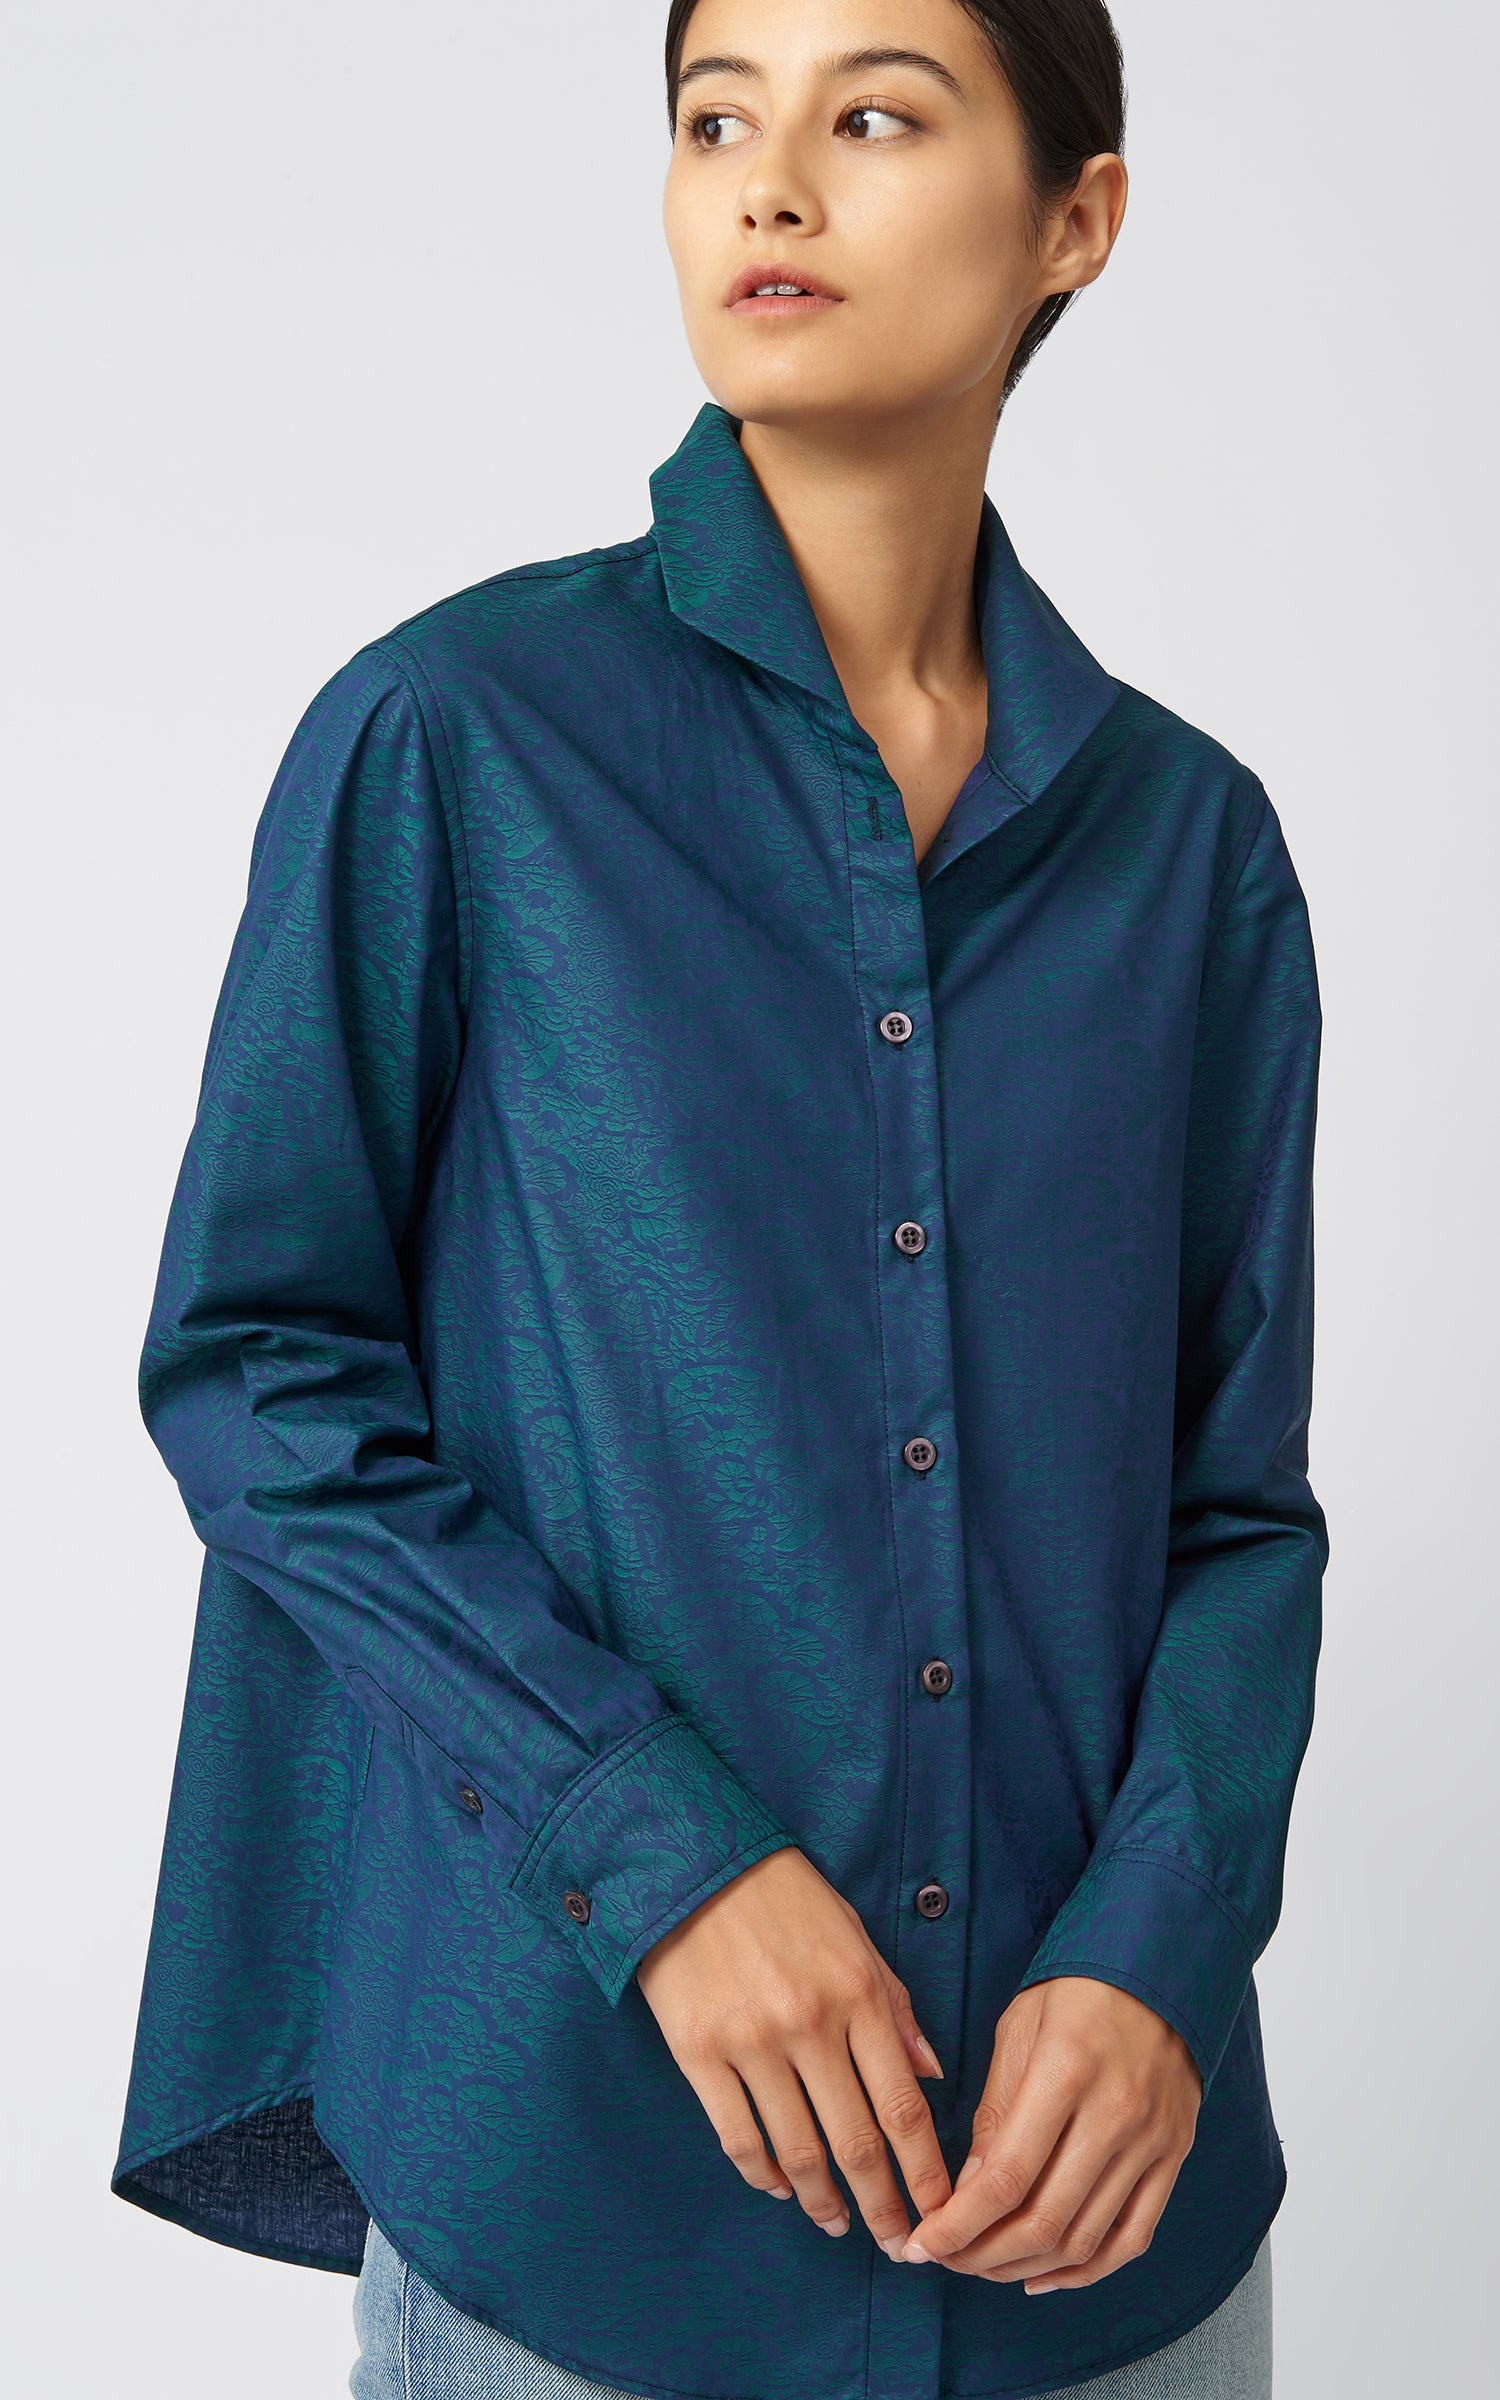 GINNA BOX PLEAT SHIRT - EMERALD JACQUARD